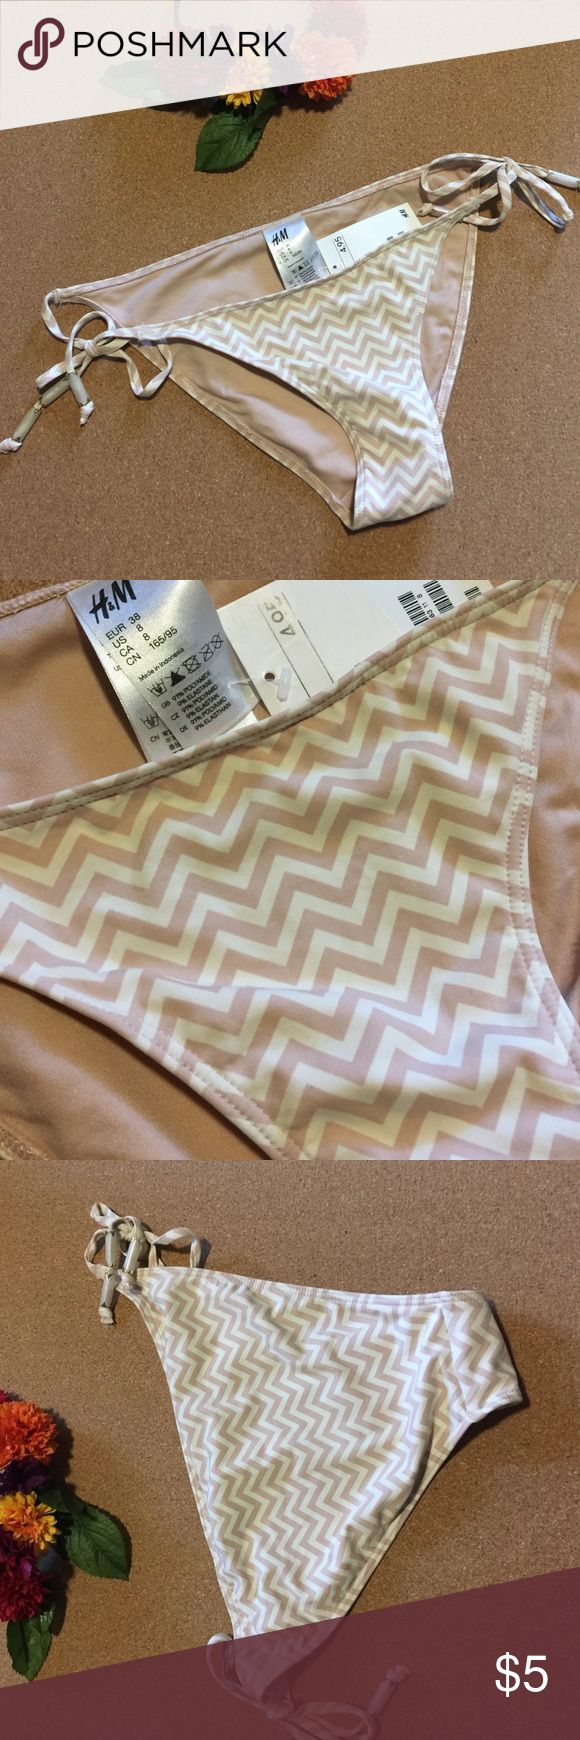 H&M bikini bottom is blush and cream chevron. 👙👙 H&M bikini bottoms in blush and cream chevron pattern. Ties on either side with cream and gold beading. Not a full bottom, more a Brazilian cut. Bundle this item with others to save! H&M Swim Bikinis